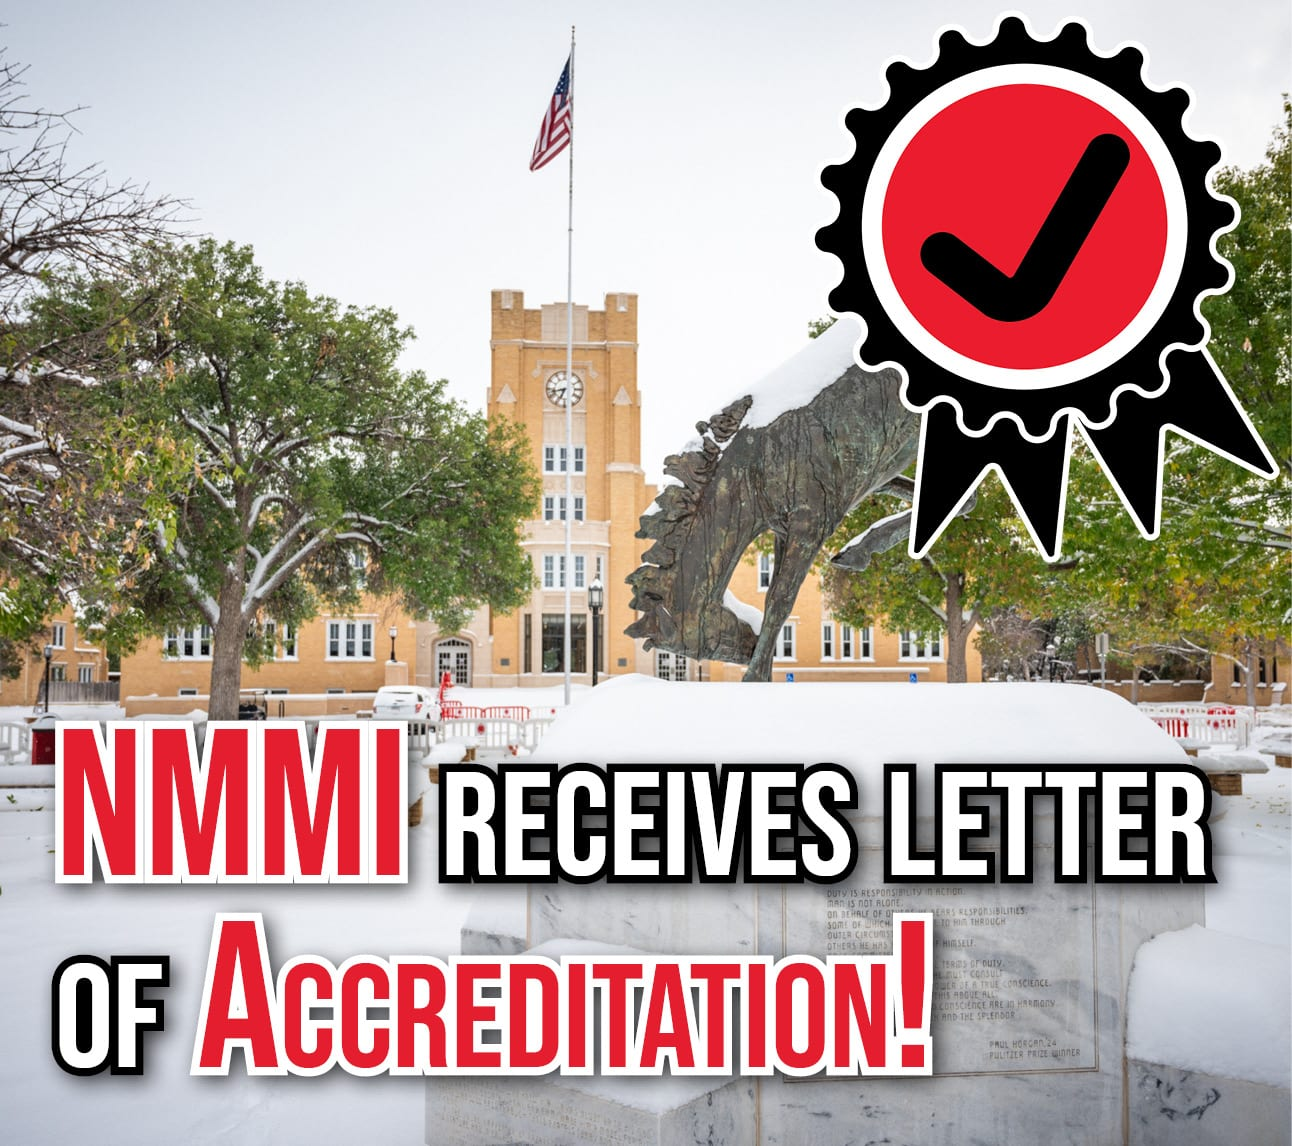 NMMI Receives letter of accreditation